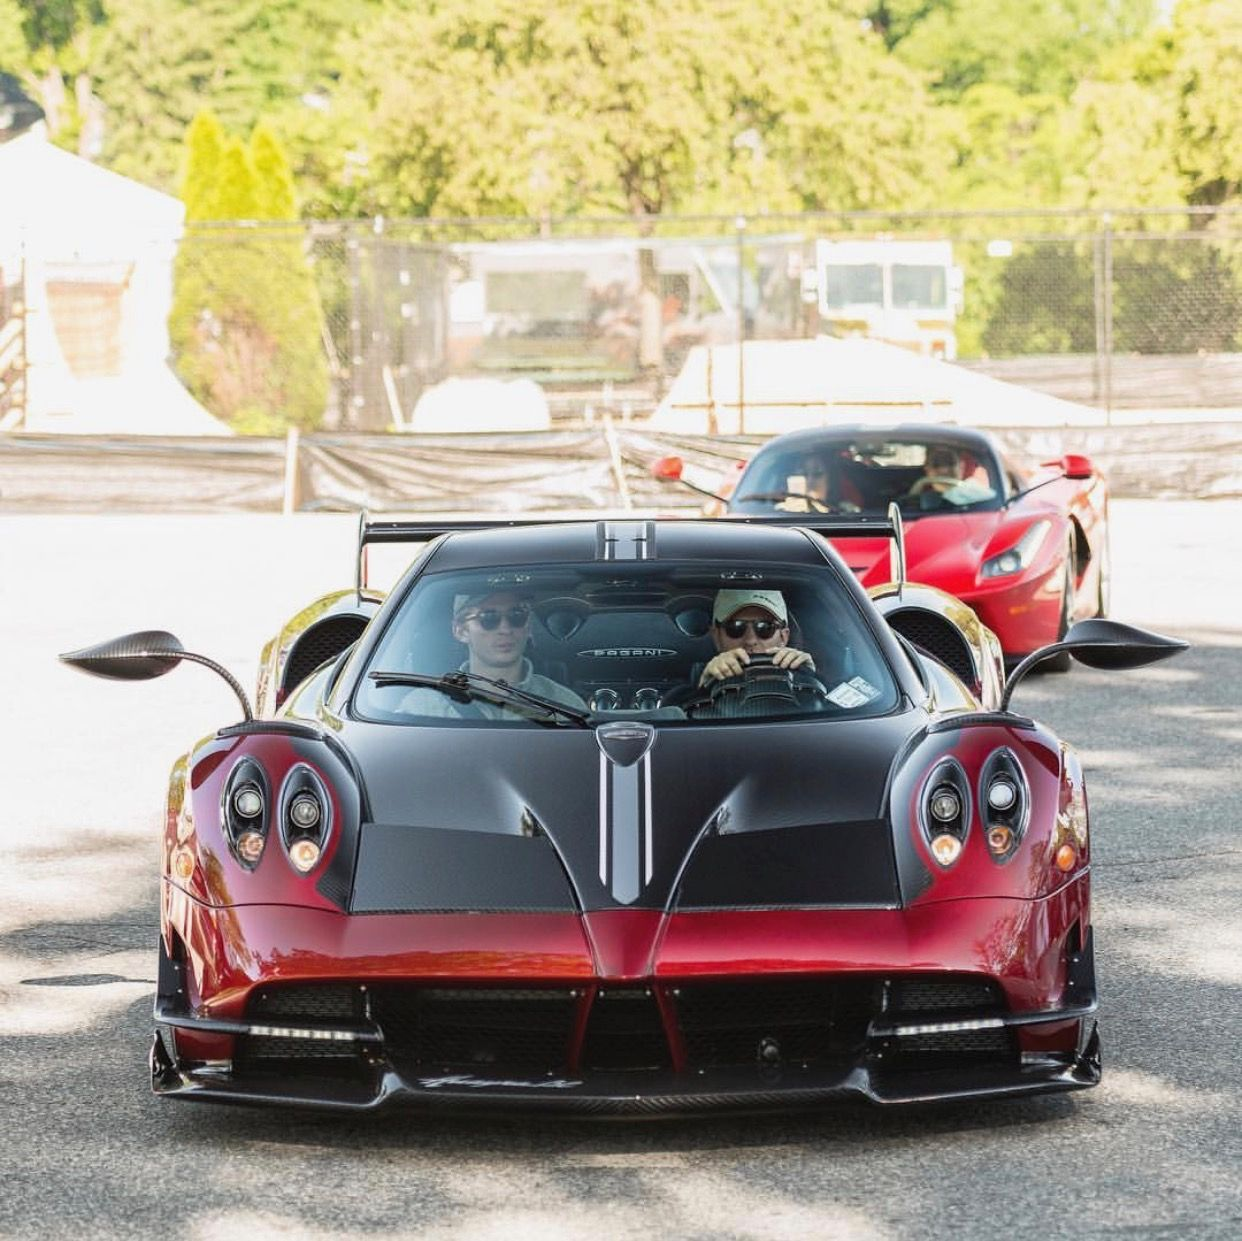 Pagani Huayra BC painted in Rosso Dubai w/ exposed Carbon Fiber and